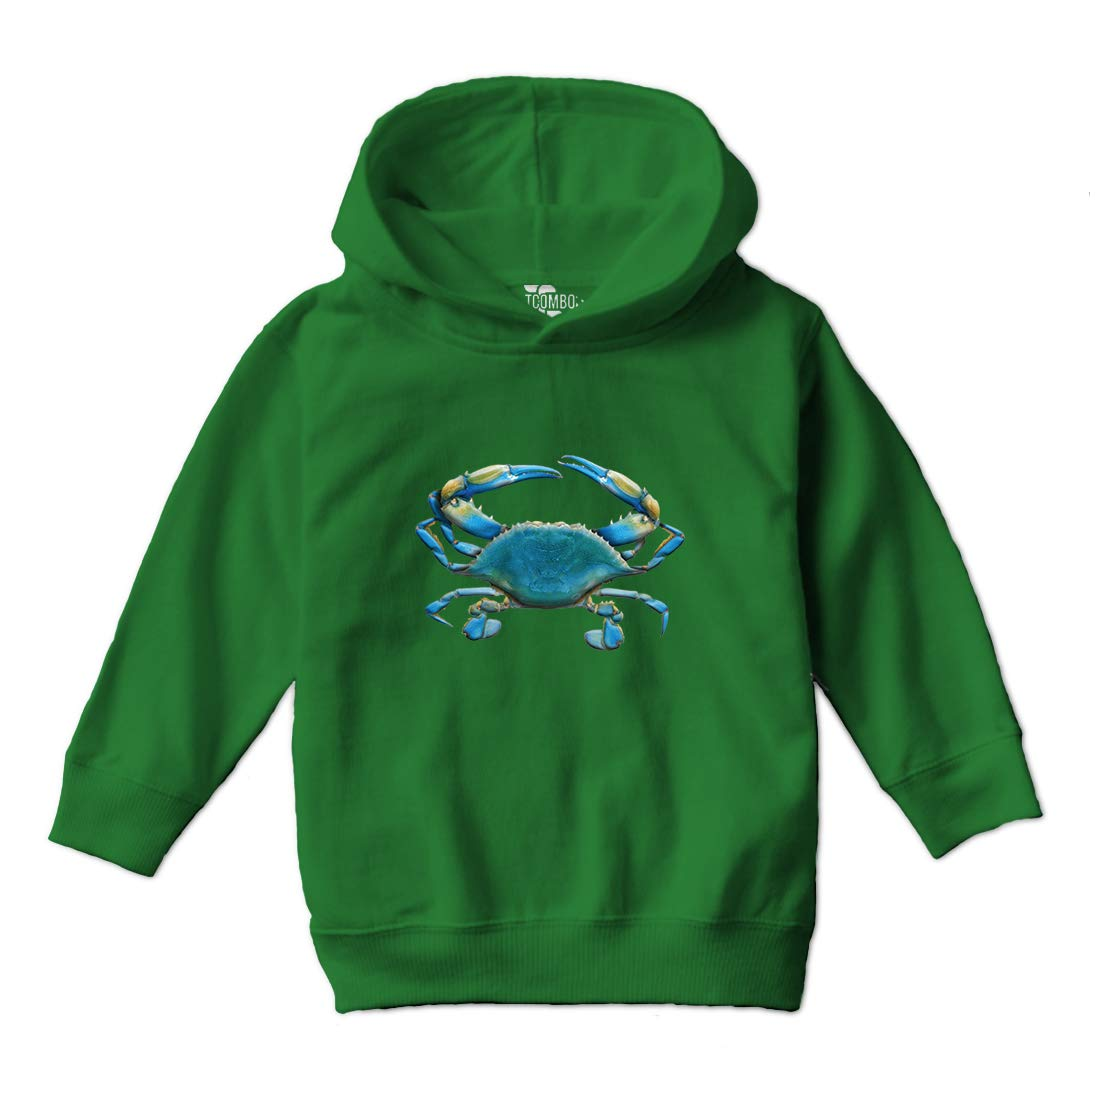 Tcombo Blue Crab - 3D Toddler Hoodie Sweatshirt KID_00033_KIDHOOD